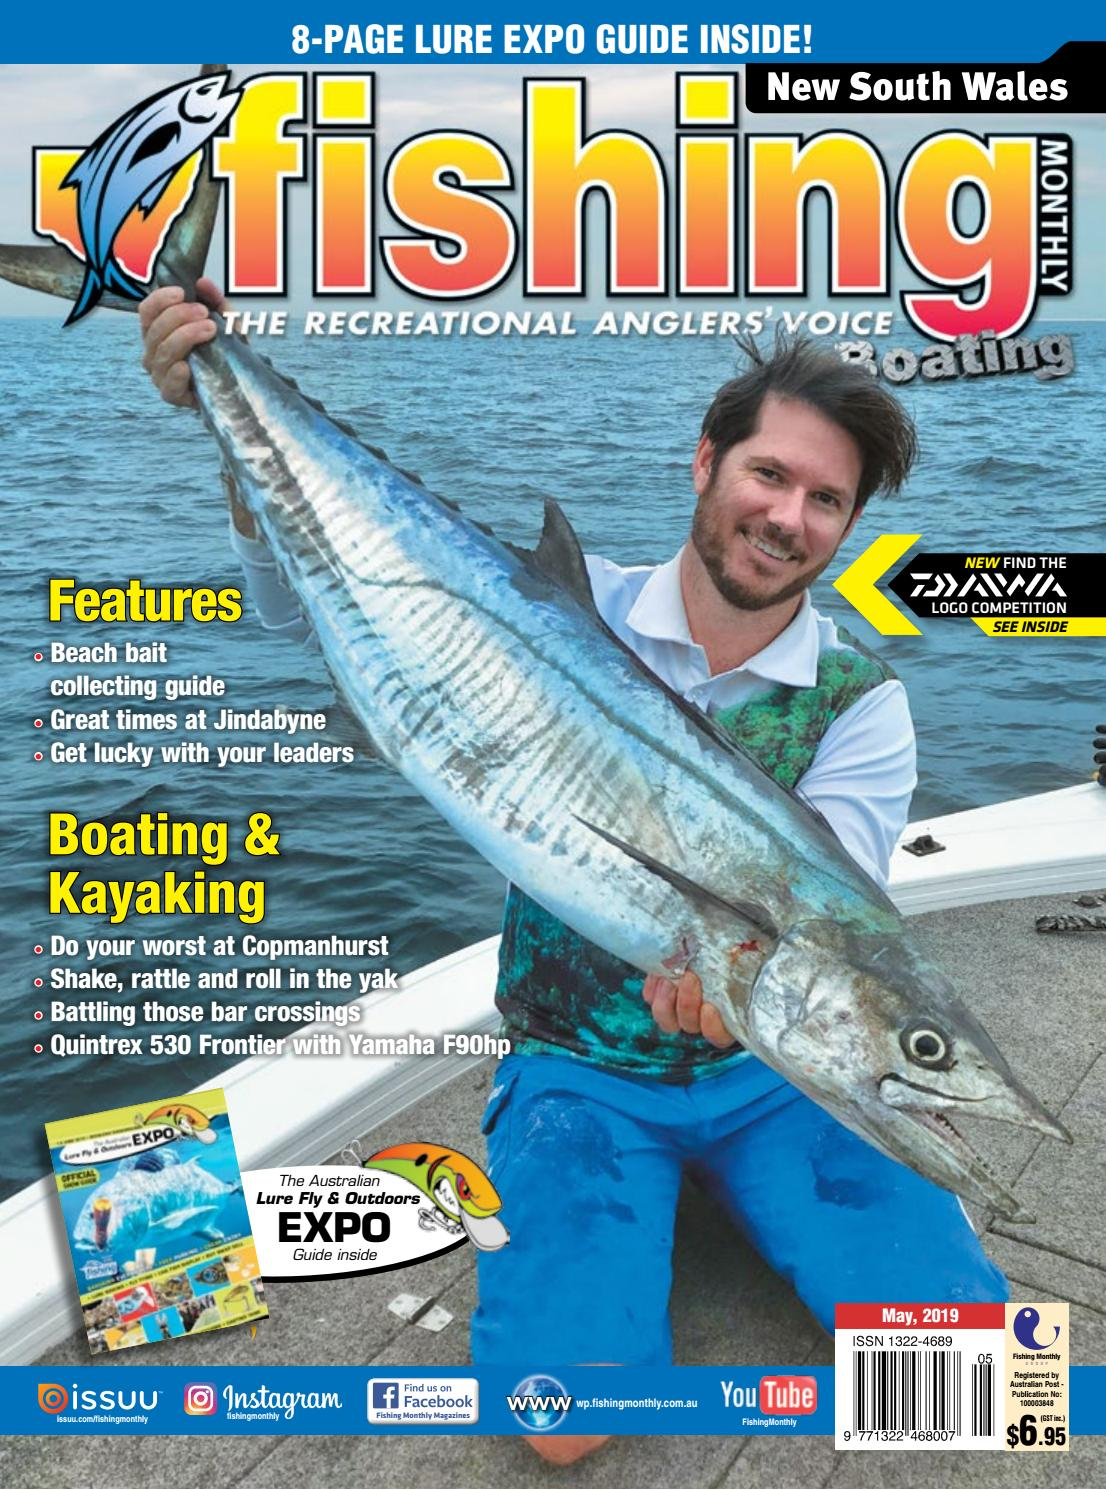 ea8cc4c18c1 New South Wales Fishing Monthly May 2019 by Fishing Monthly - issuu